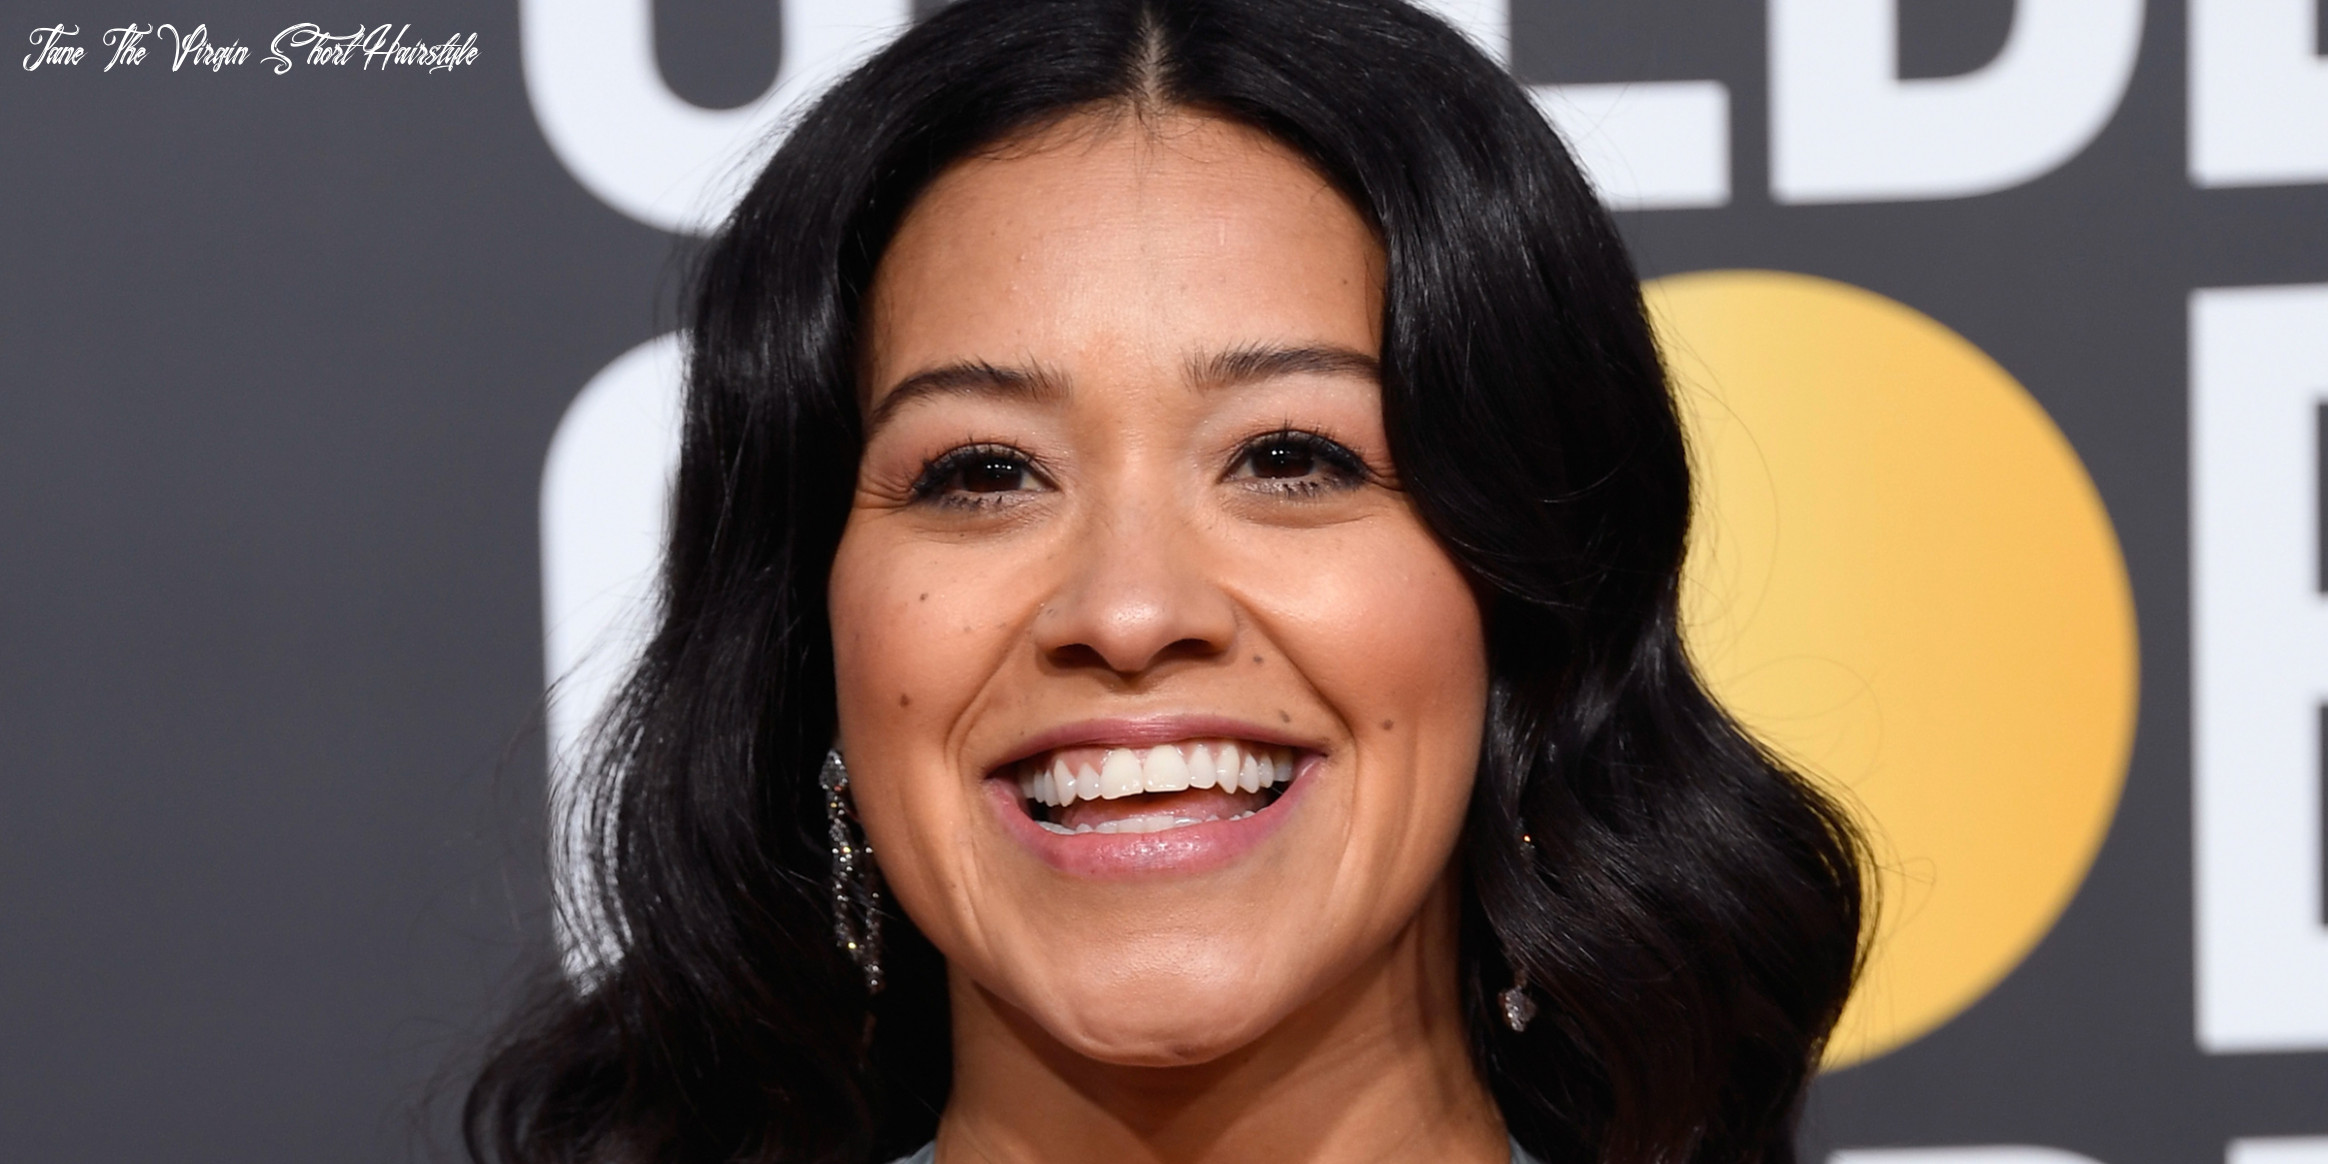 Gina rodriguez has gorgeous blond highlights for summer — see her